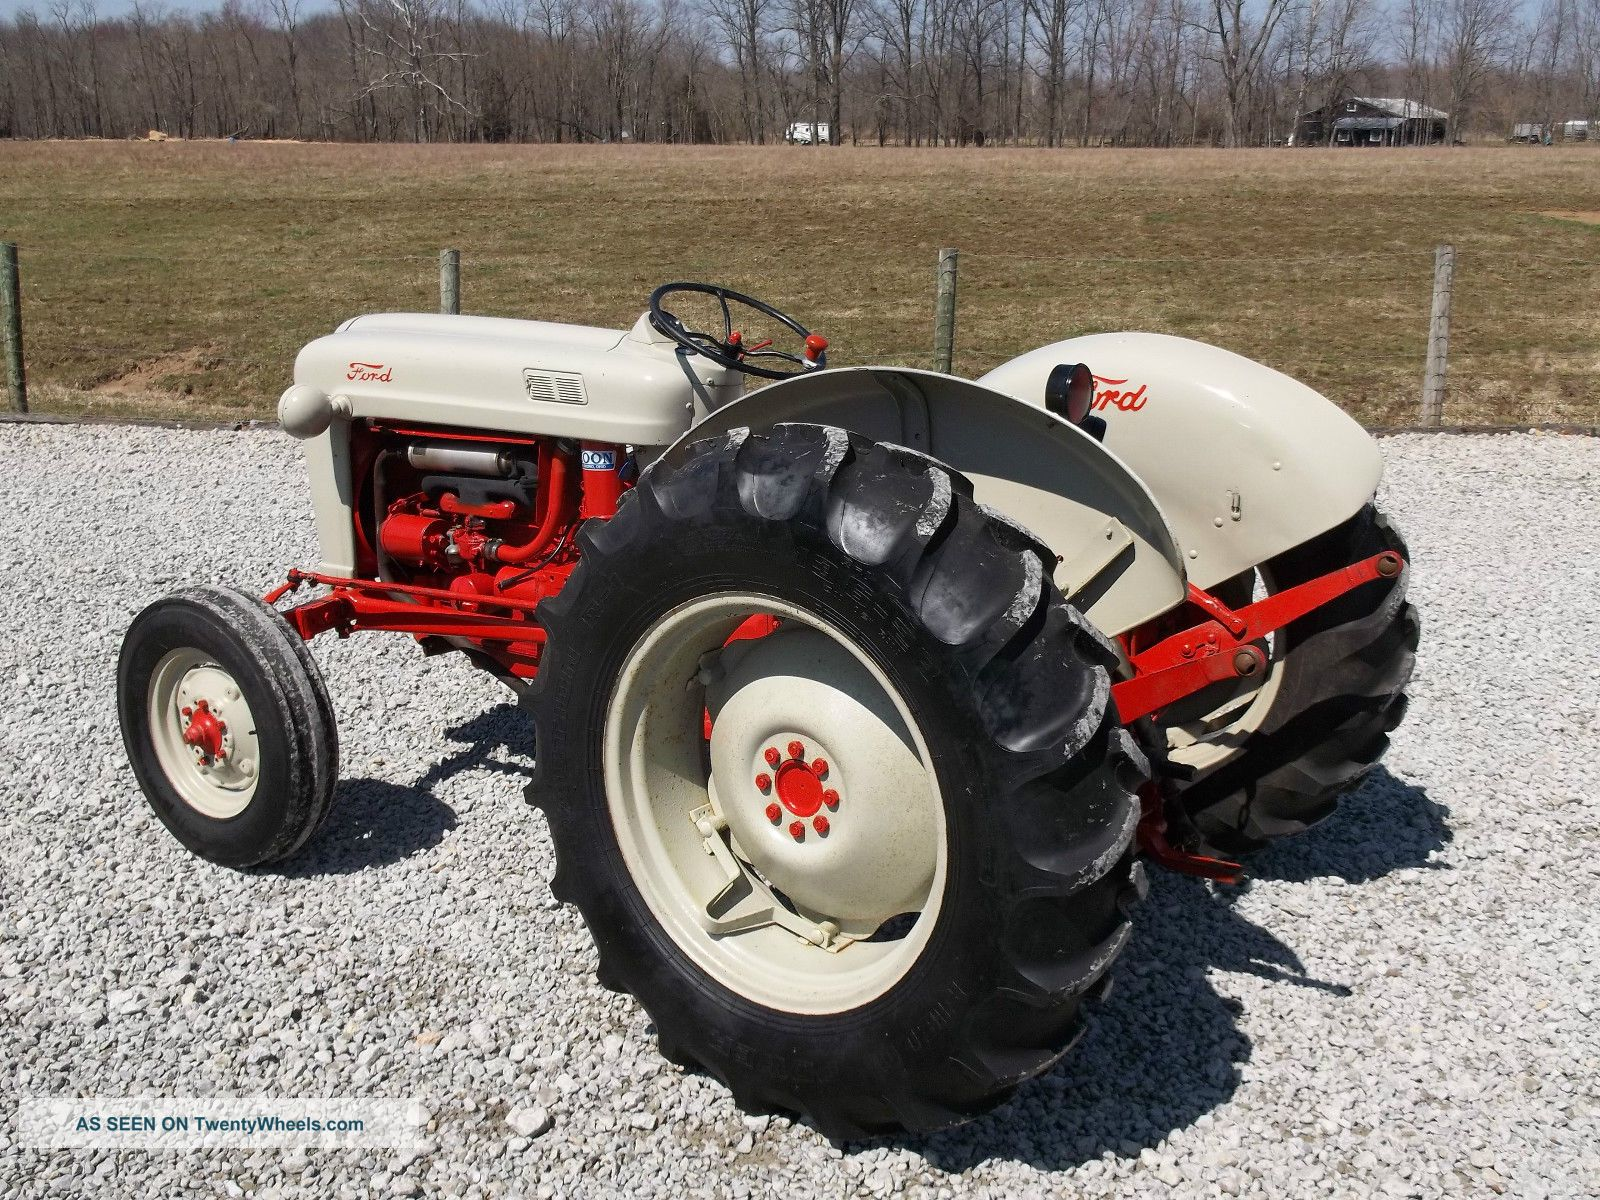 Ford Tractor 800 Series Specifications : Ford model tractor